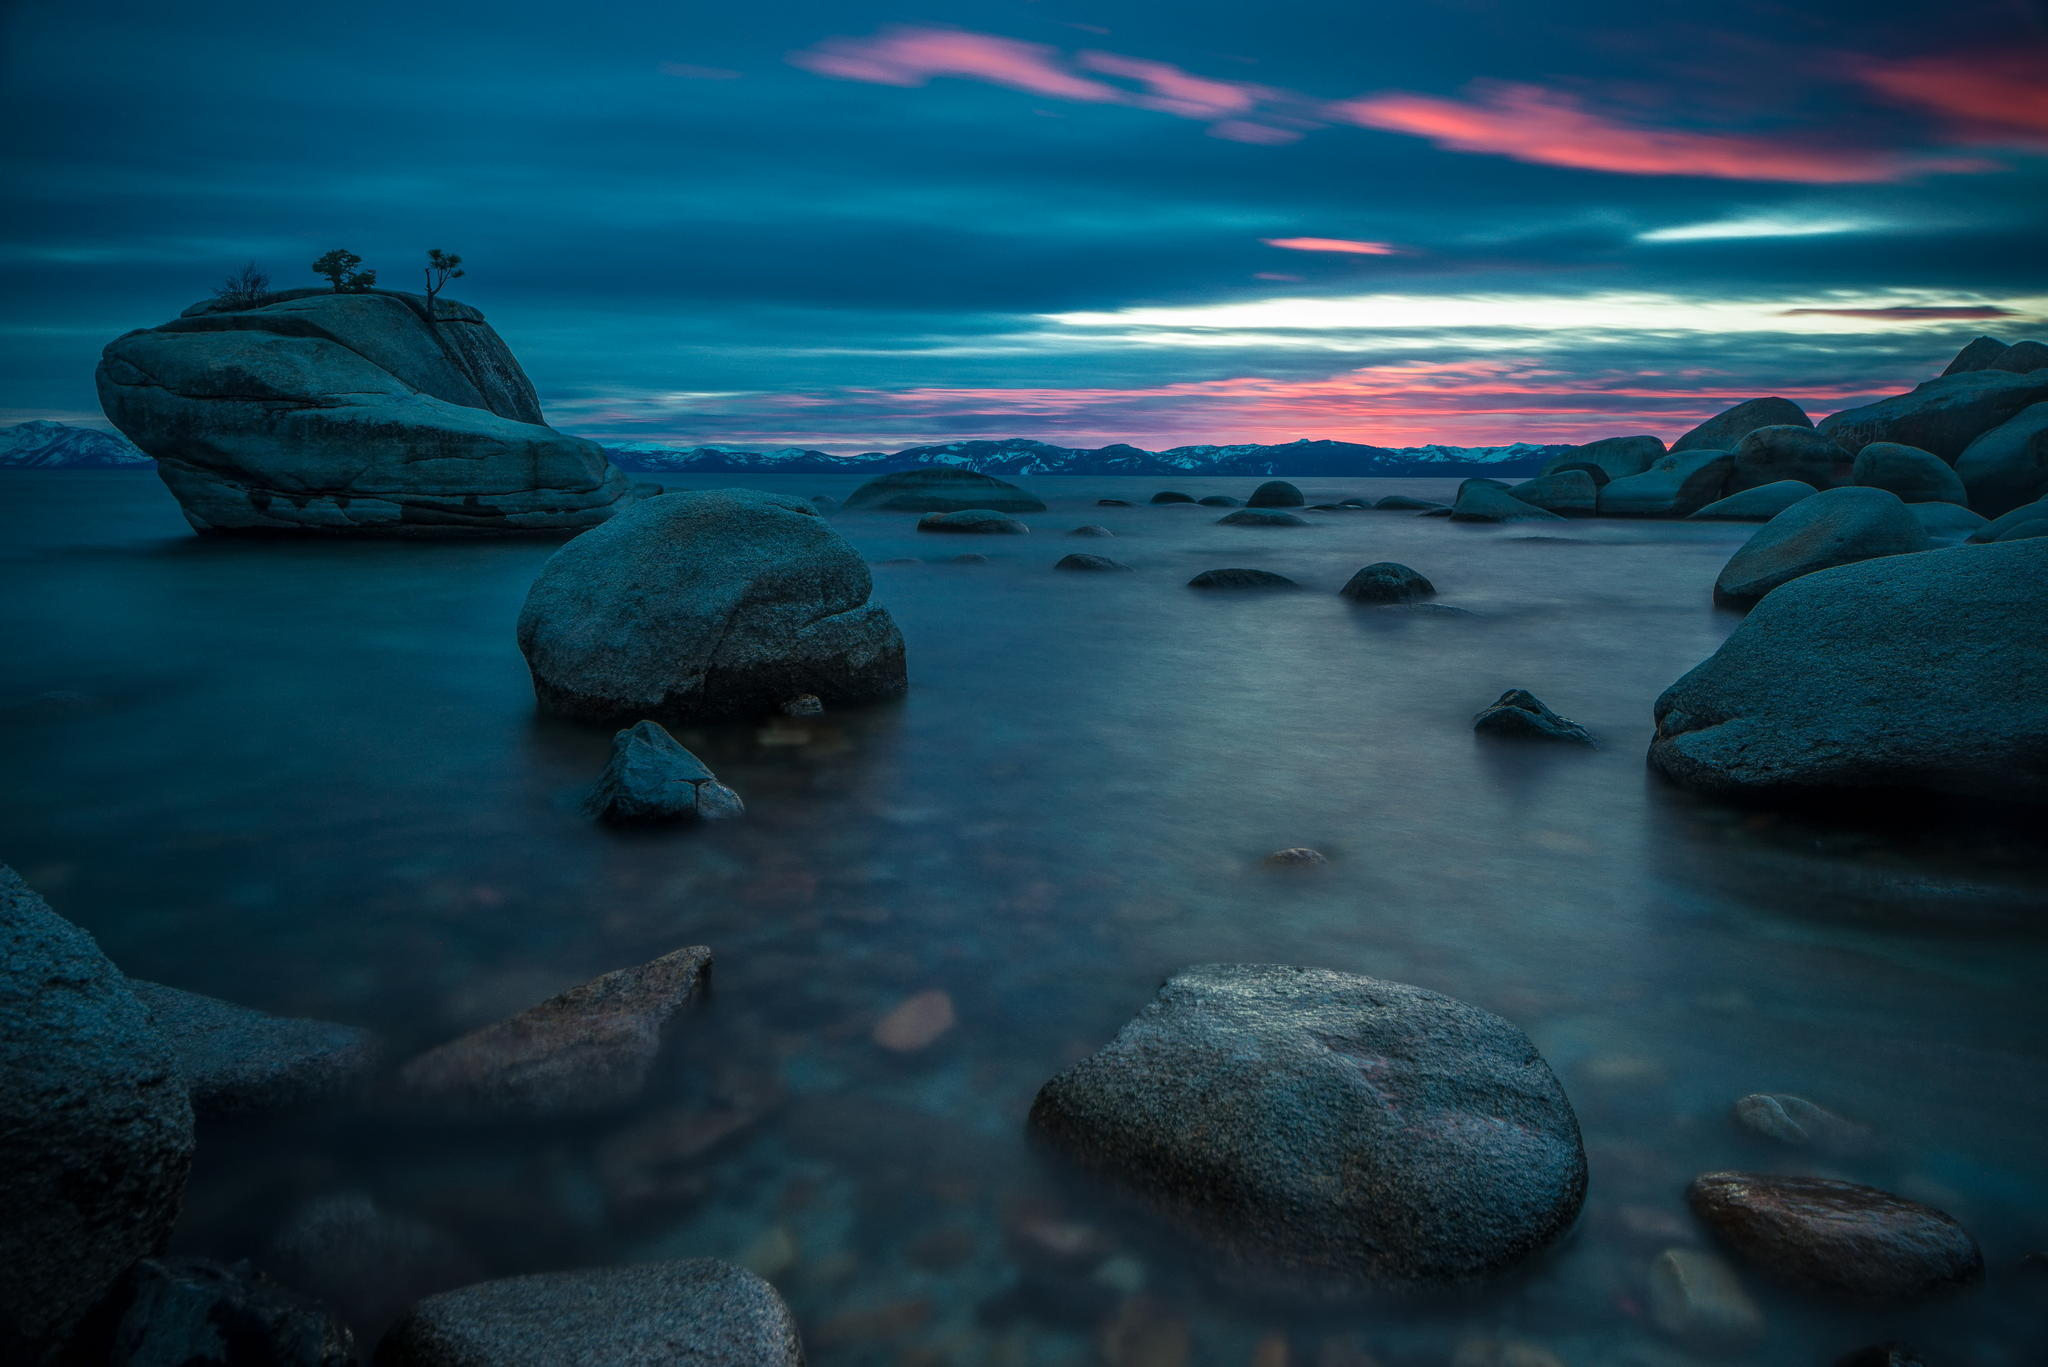 Wallpaper bonsai rock lake tahoe lake rock rocks nature twilight 2048x1367